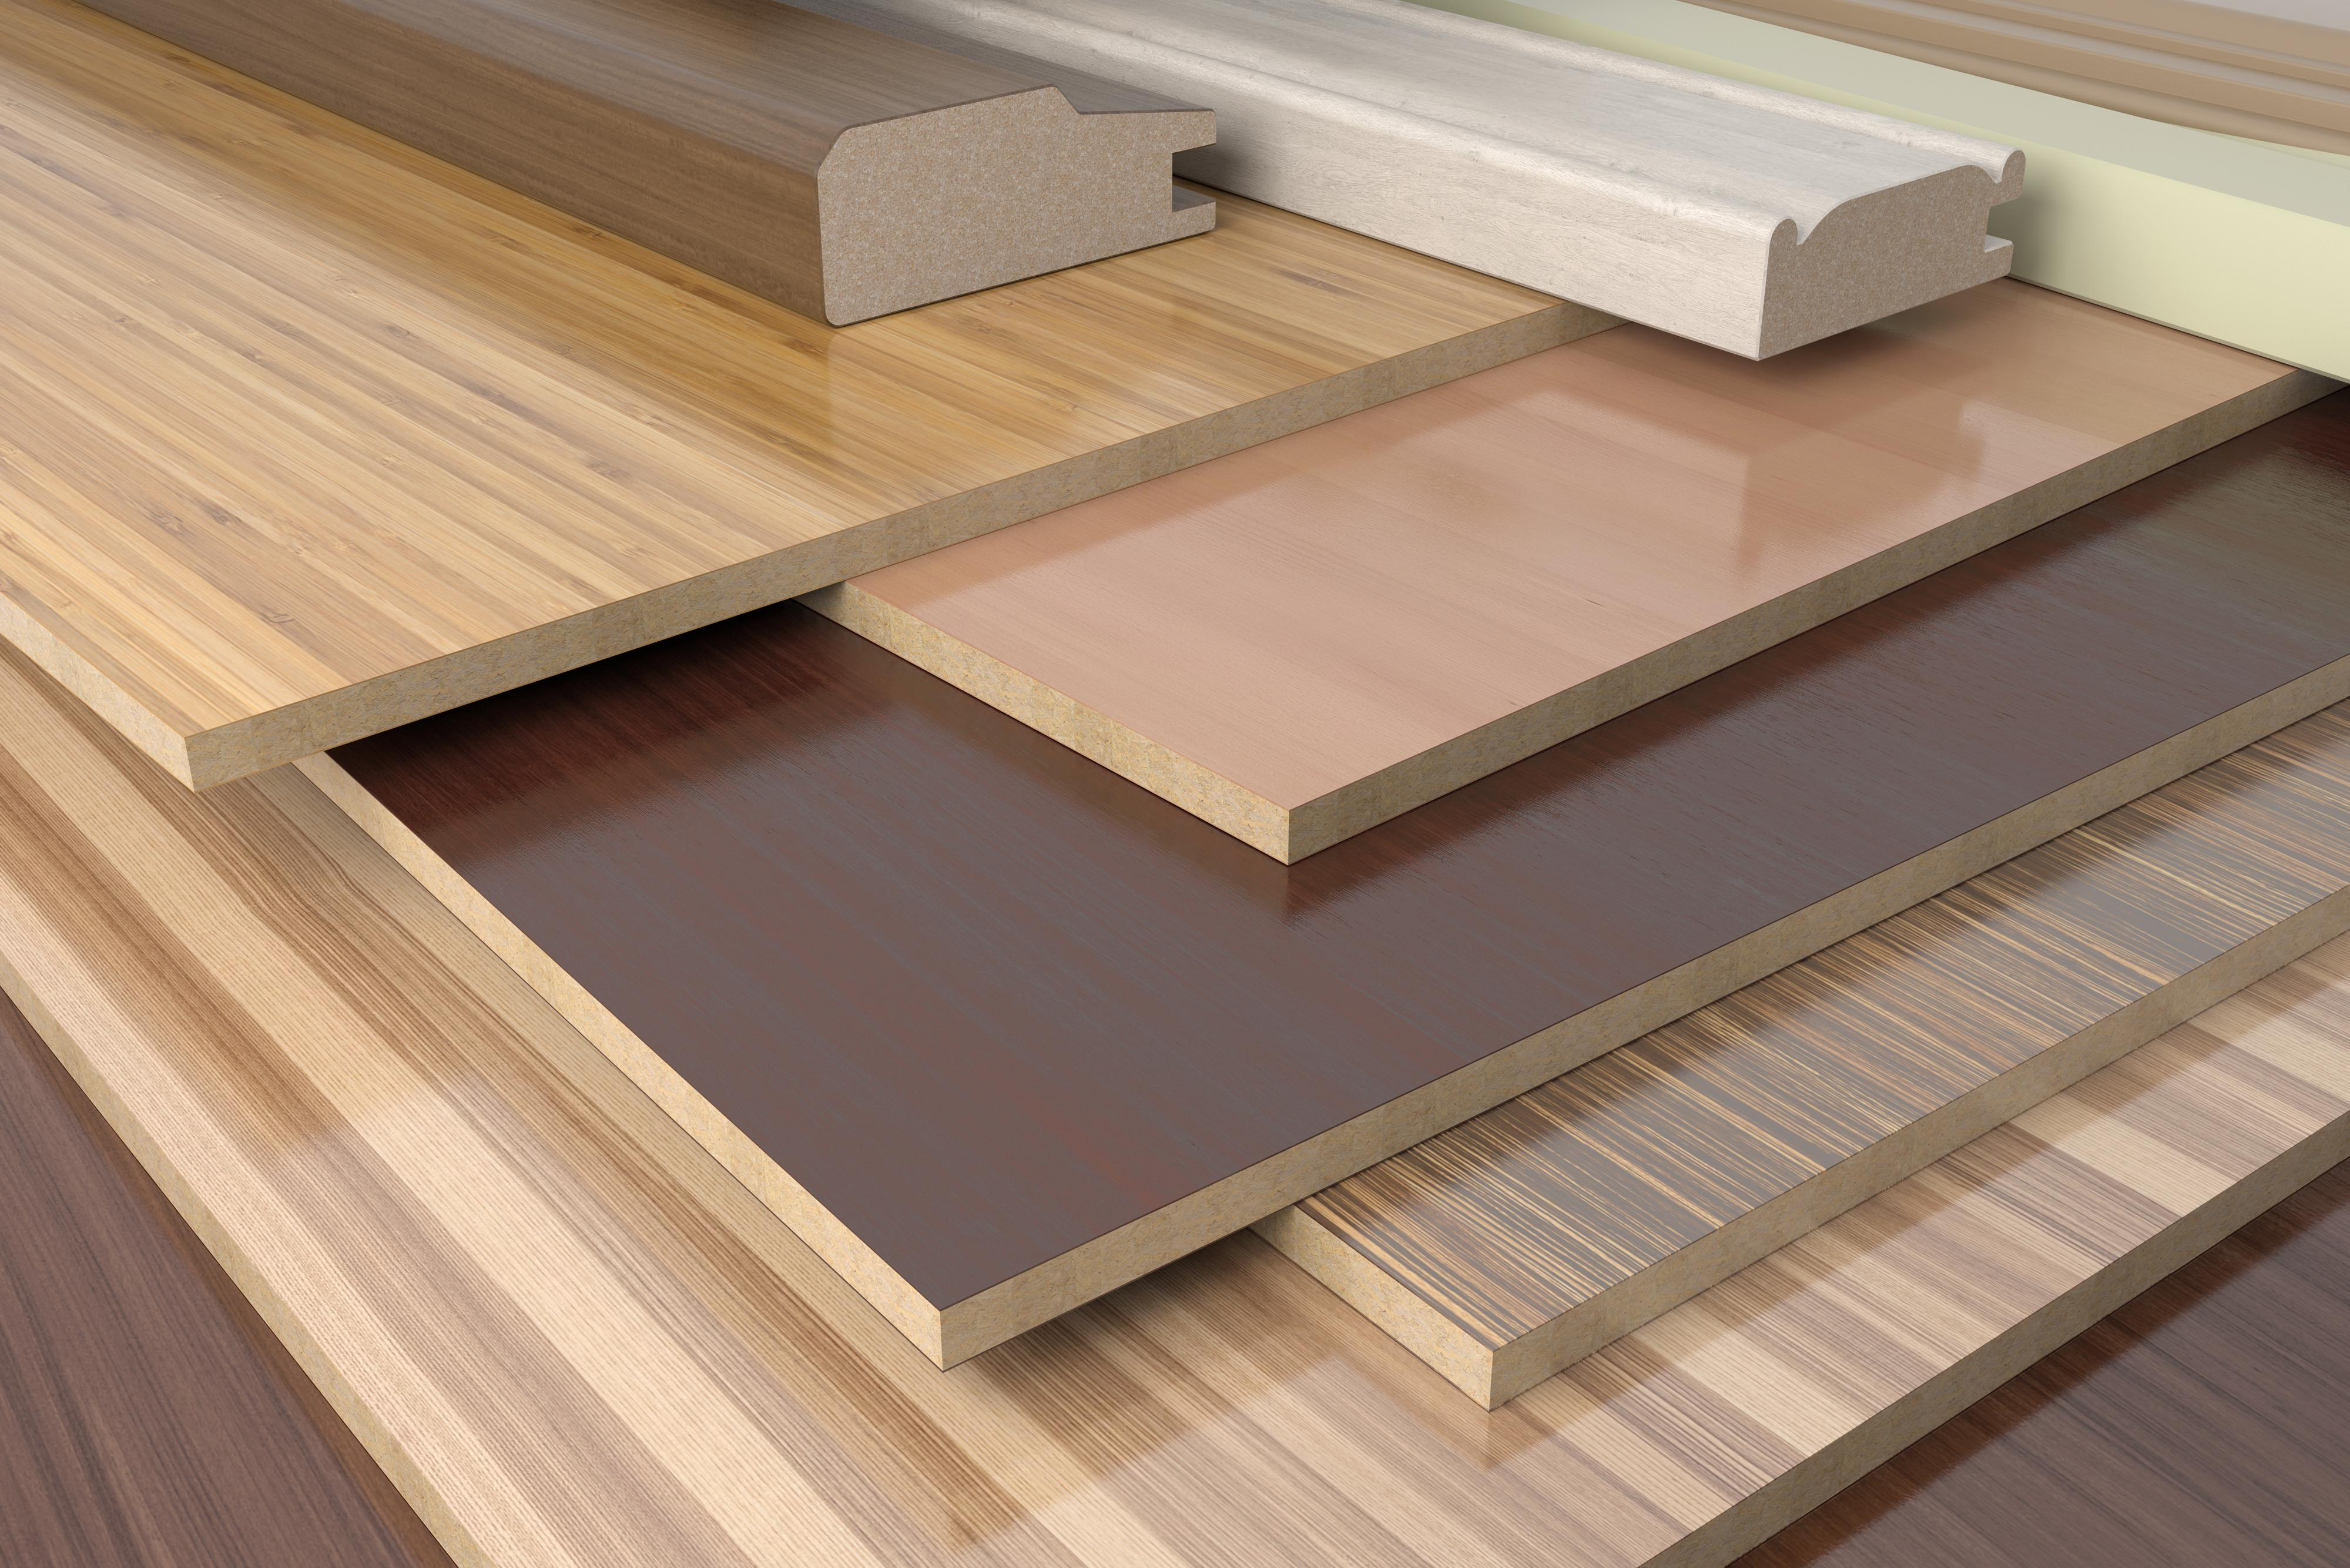 Furniture profiles with chipboards. 3d render.